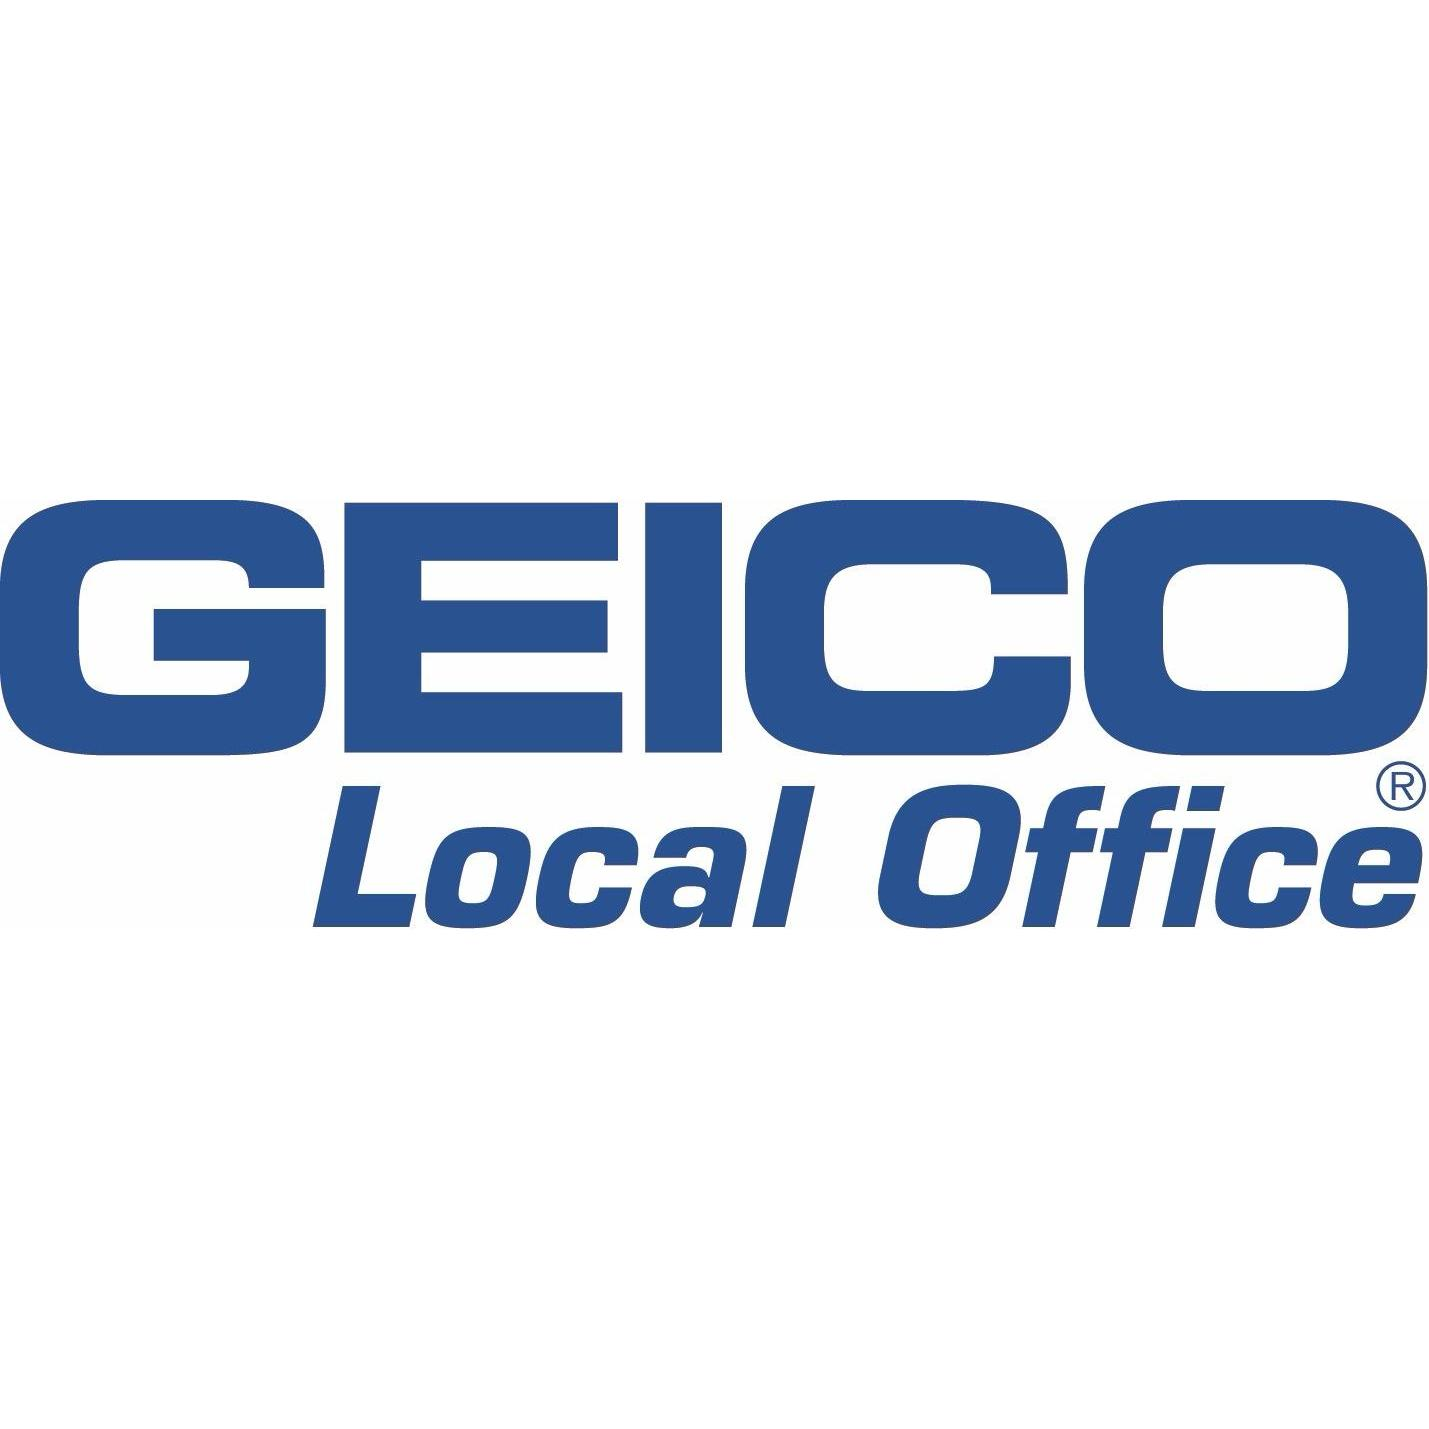 GEICO Insurance Agent - San Jose, CA 95125 - (408) 286-4342 | ShowMeLocal.com